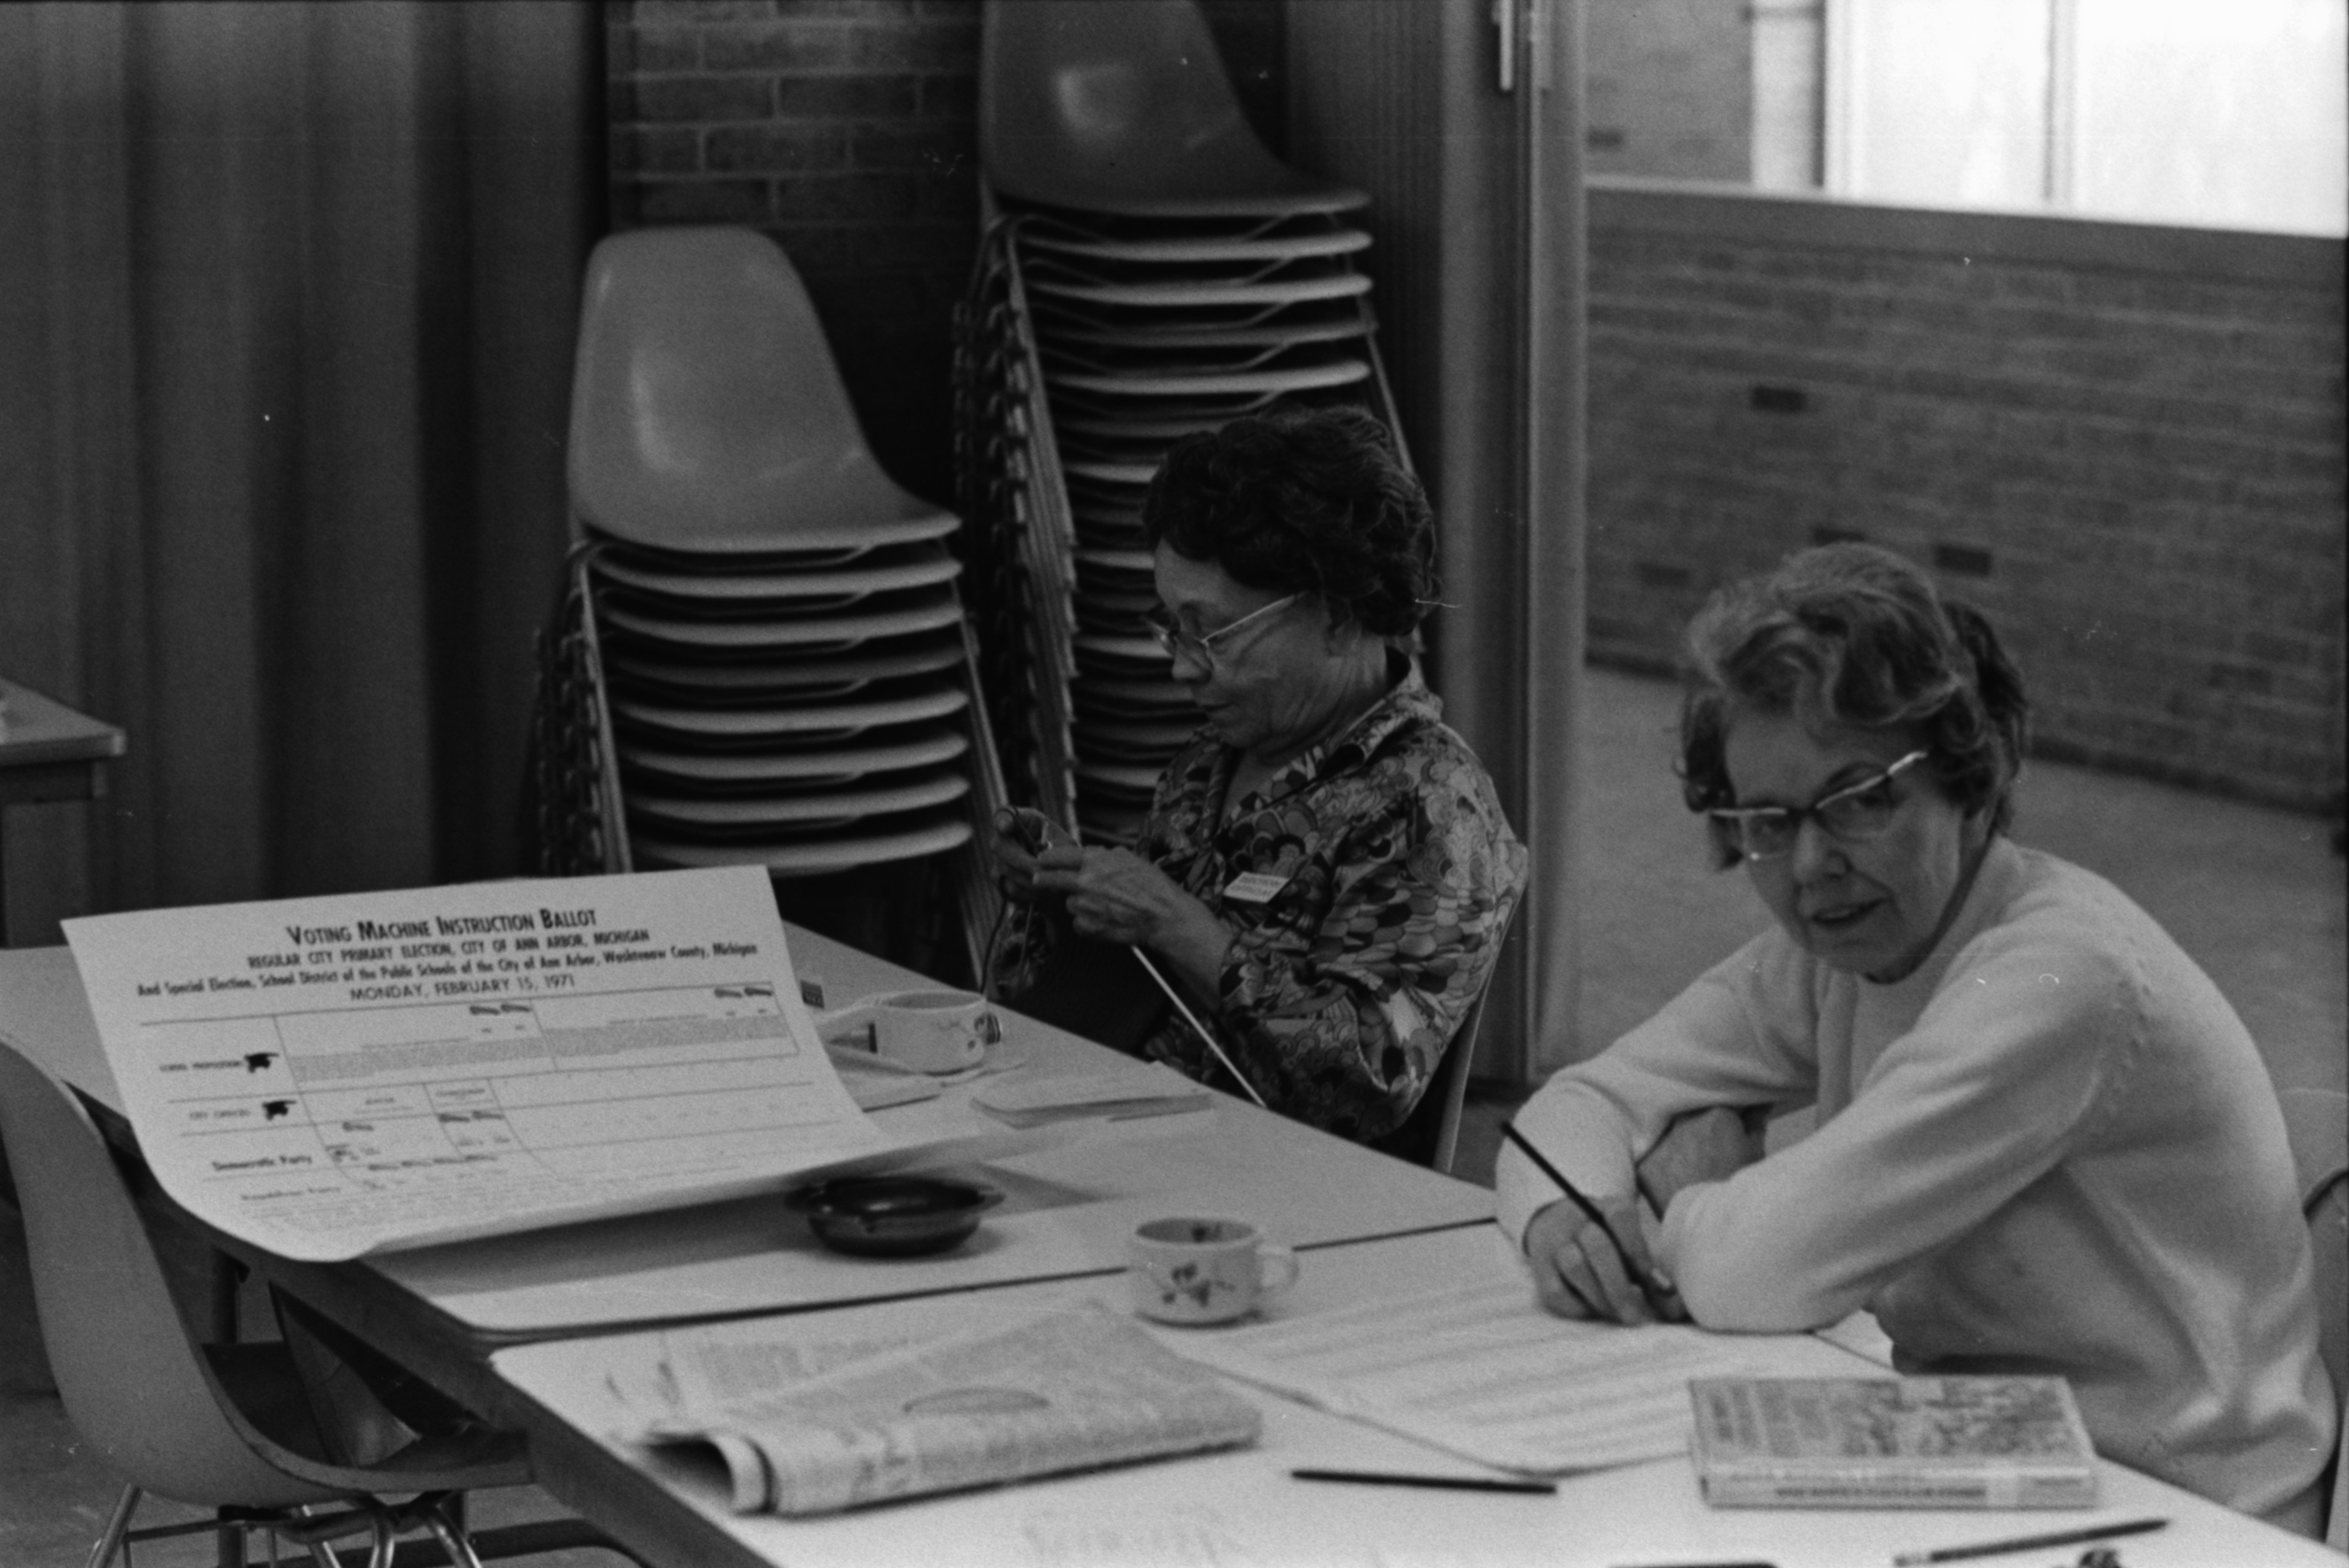 Election Workers Waiting for Voters at First Ward, Precinct 2, February 1971 image